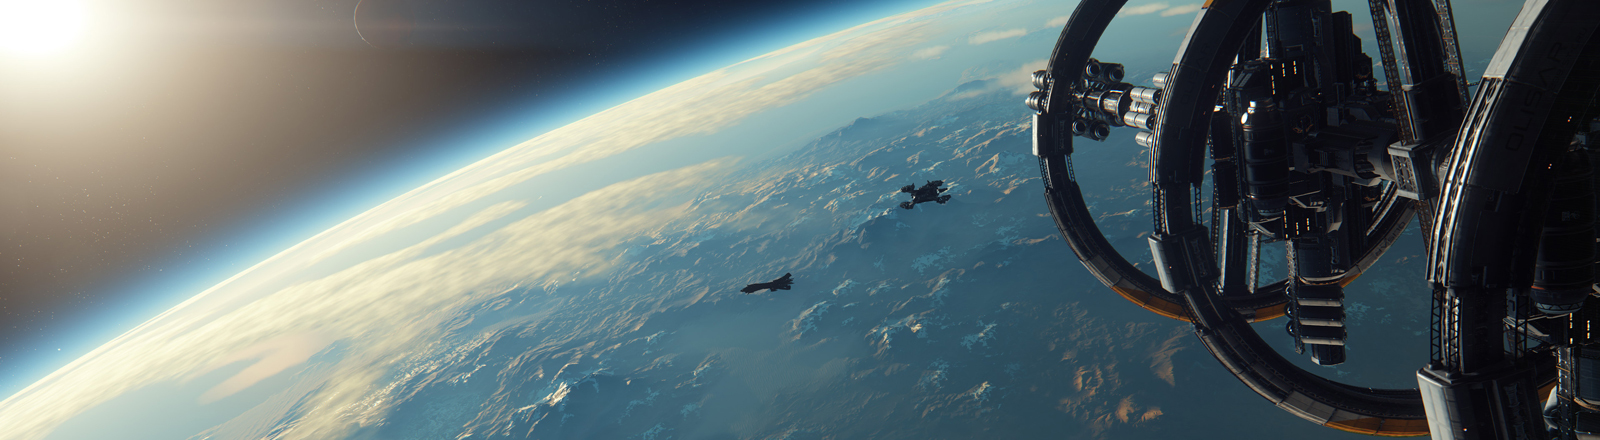 Screenshot aus dem Computerspiel Star Citizen